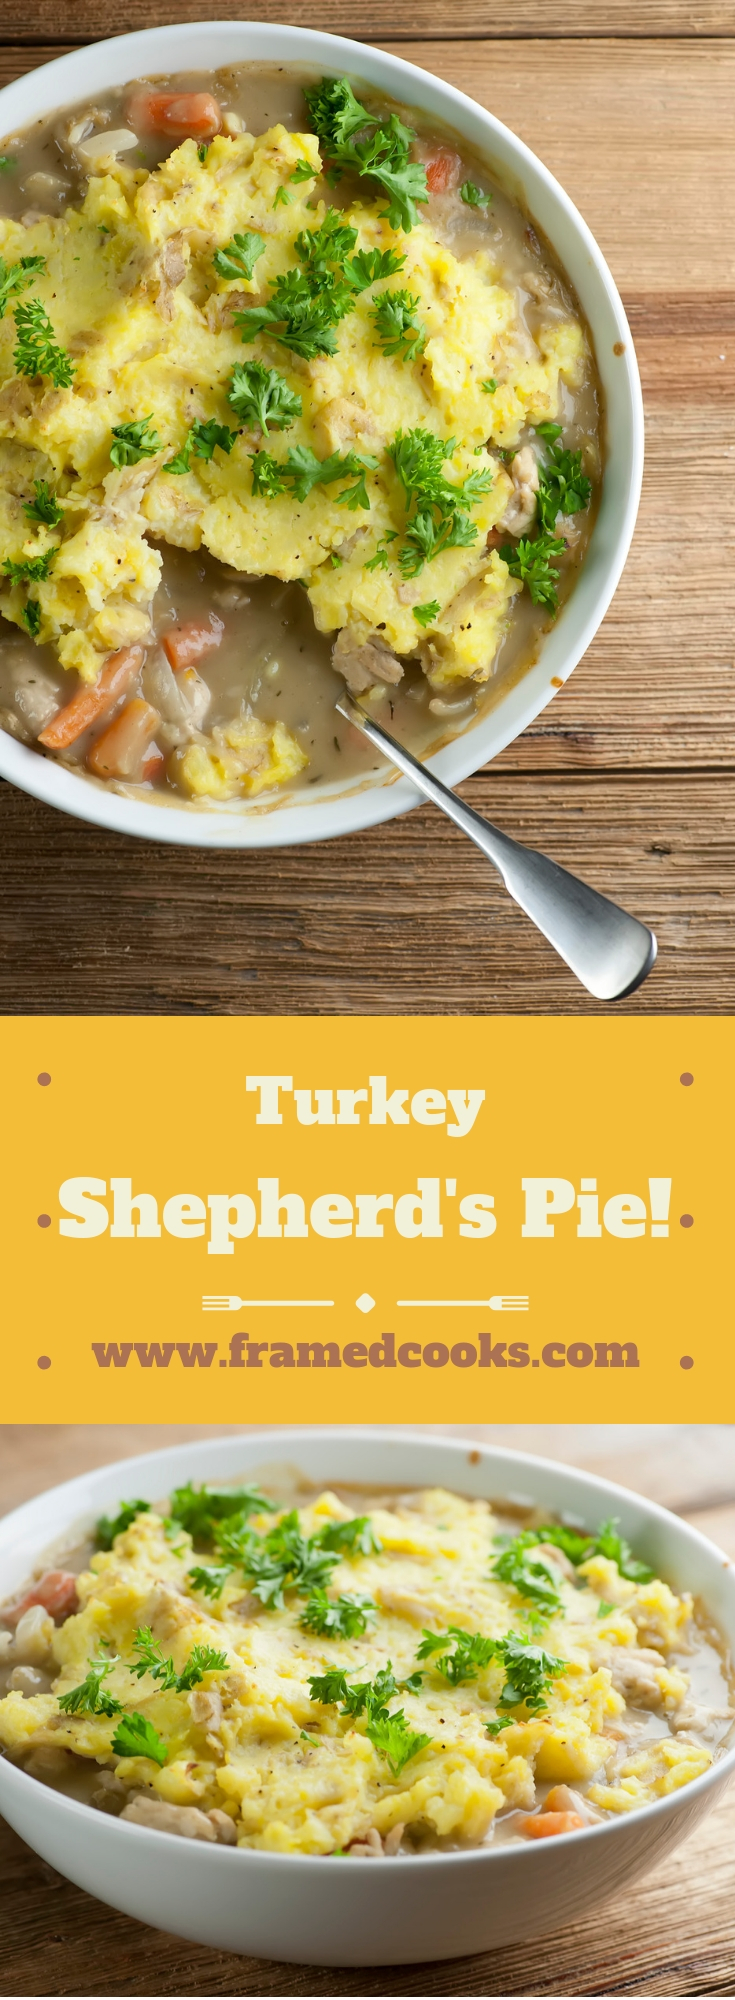 This easy recipe for turkey shepherd's pie is so good that you might not want to wait for the Thanksgiving leftovers to make it!